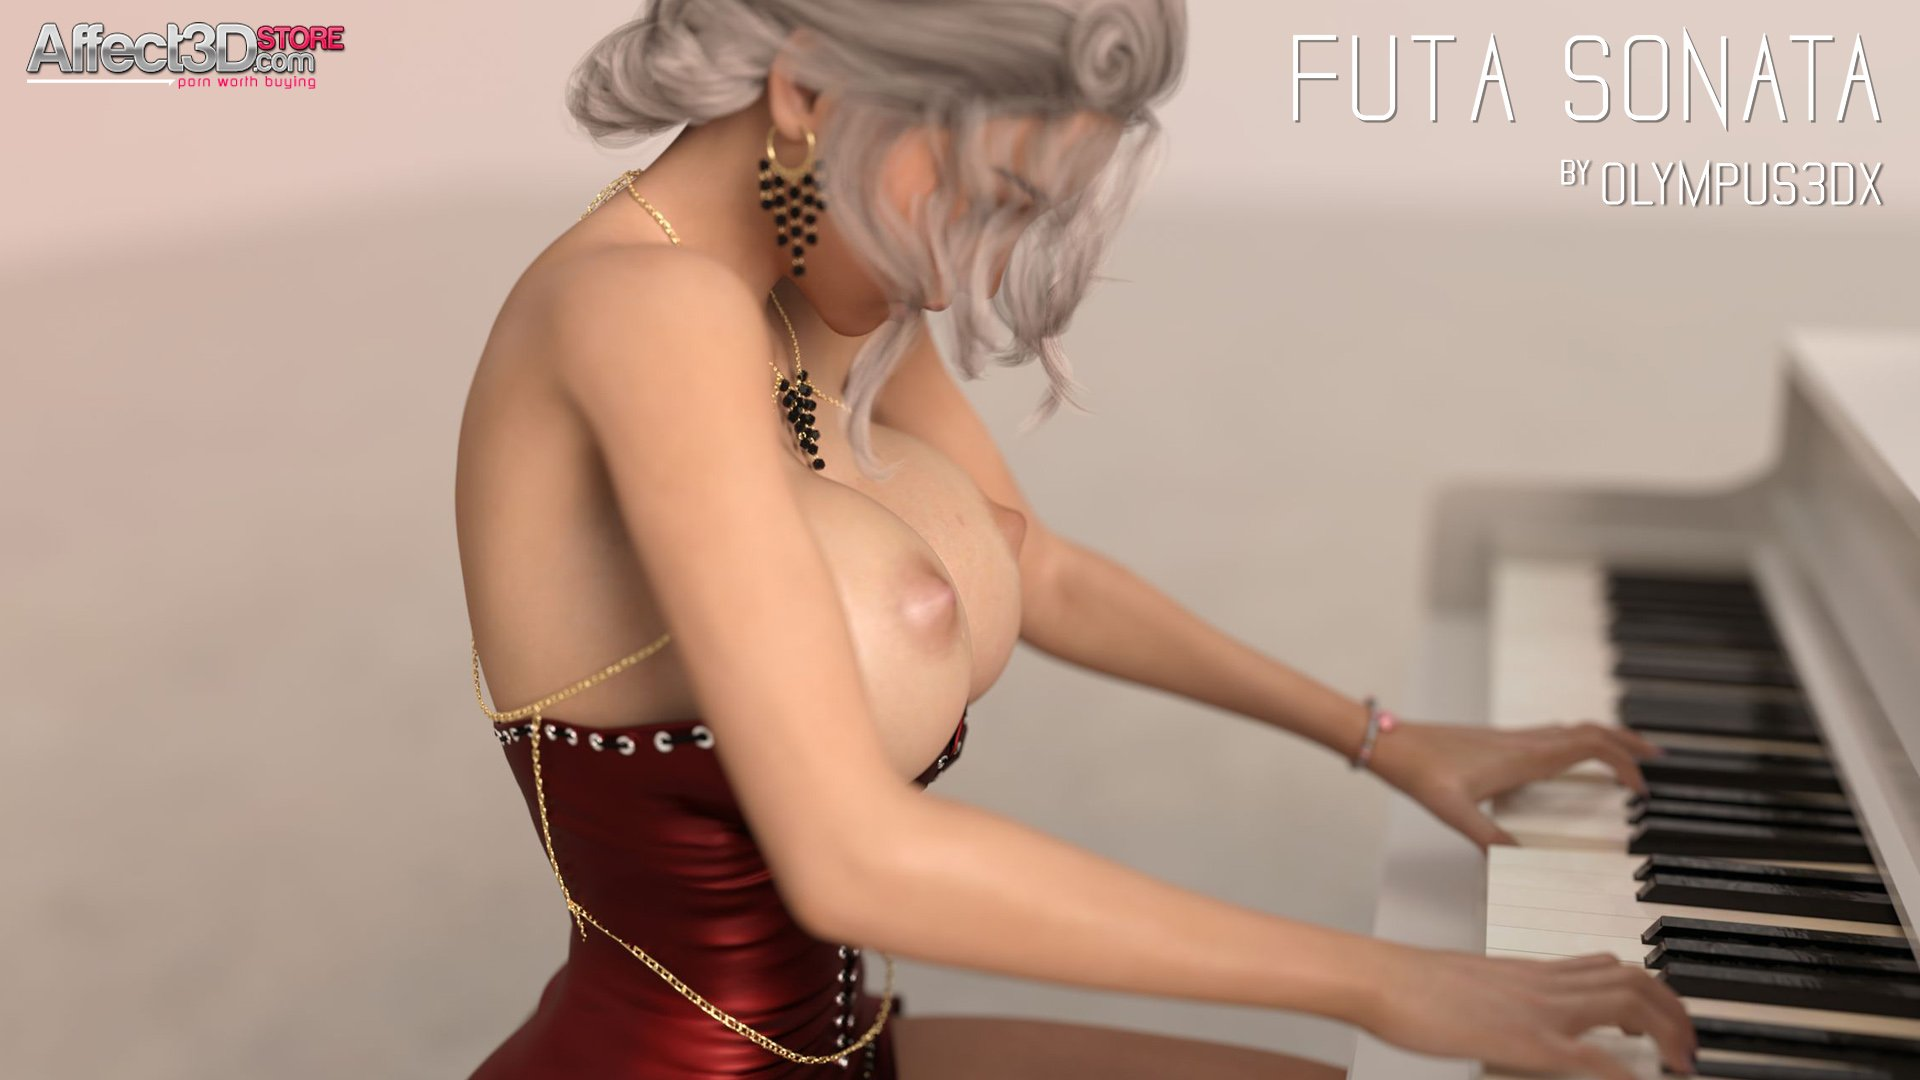 New Futanari Animation from Olympus! Watch the Trailer!